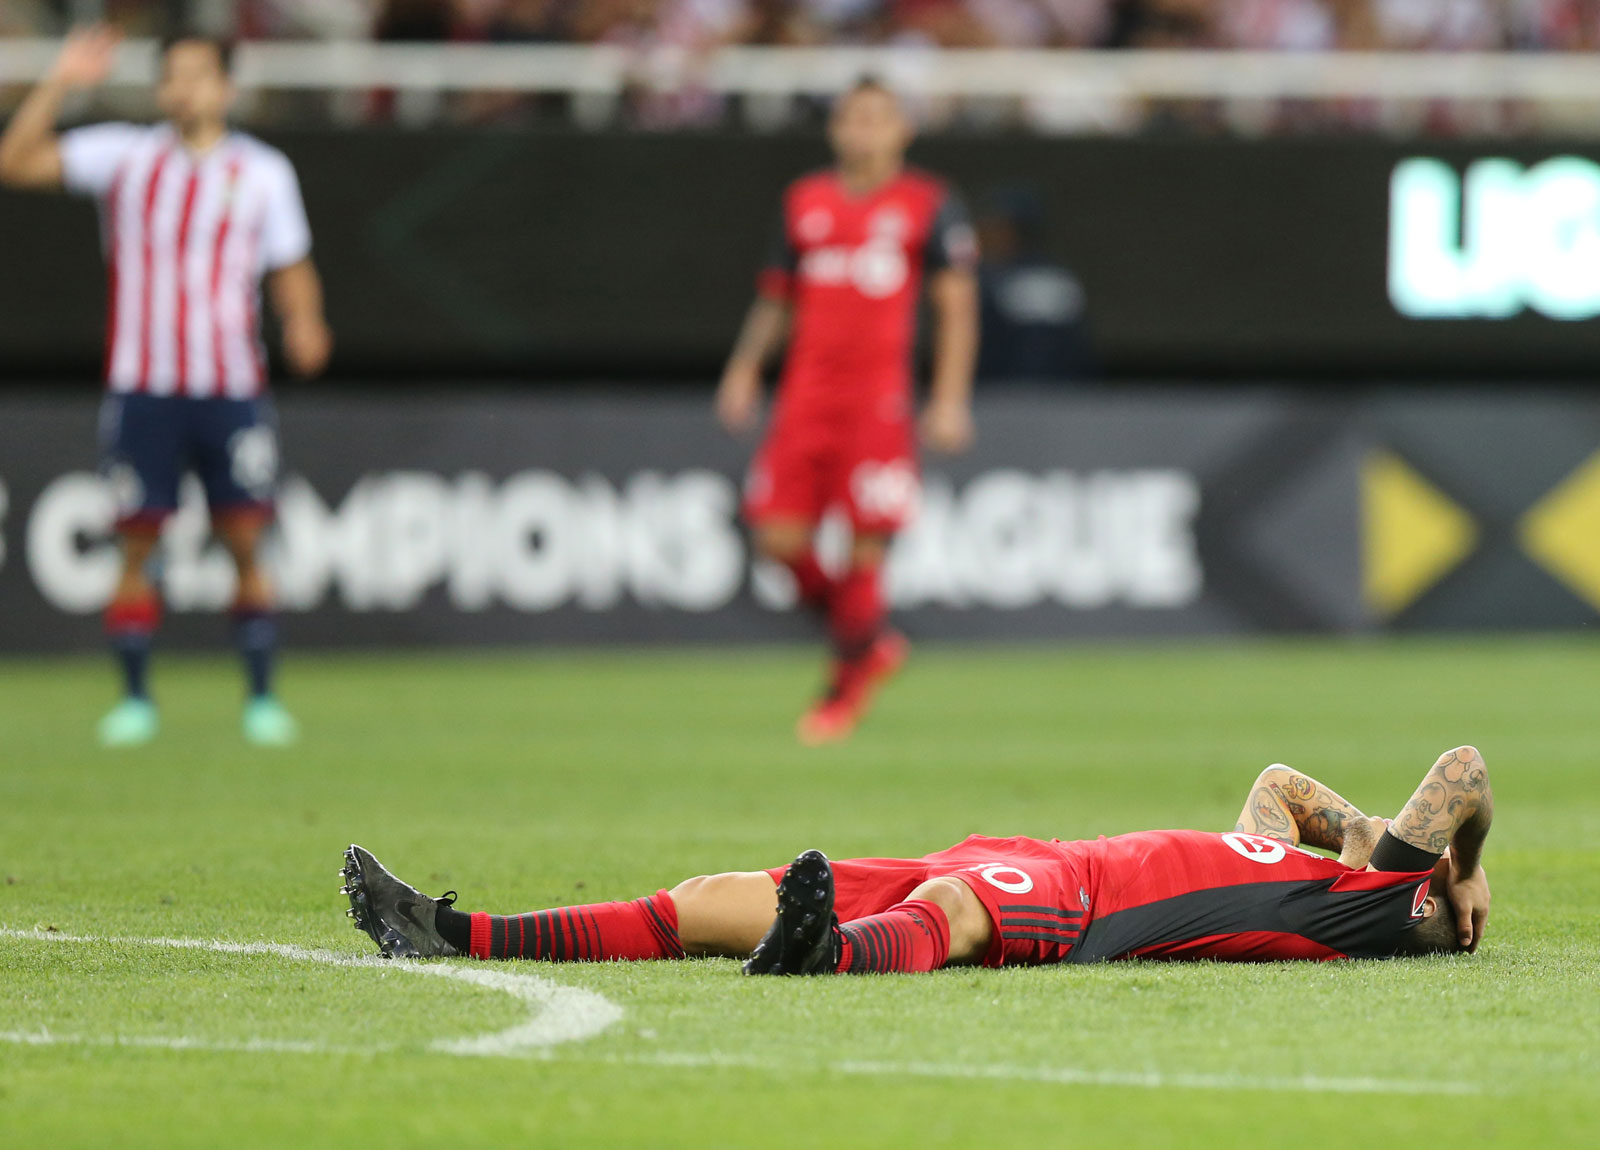 Toronto FC loses in the CCL final to Chivas